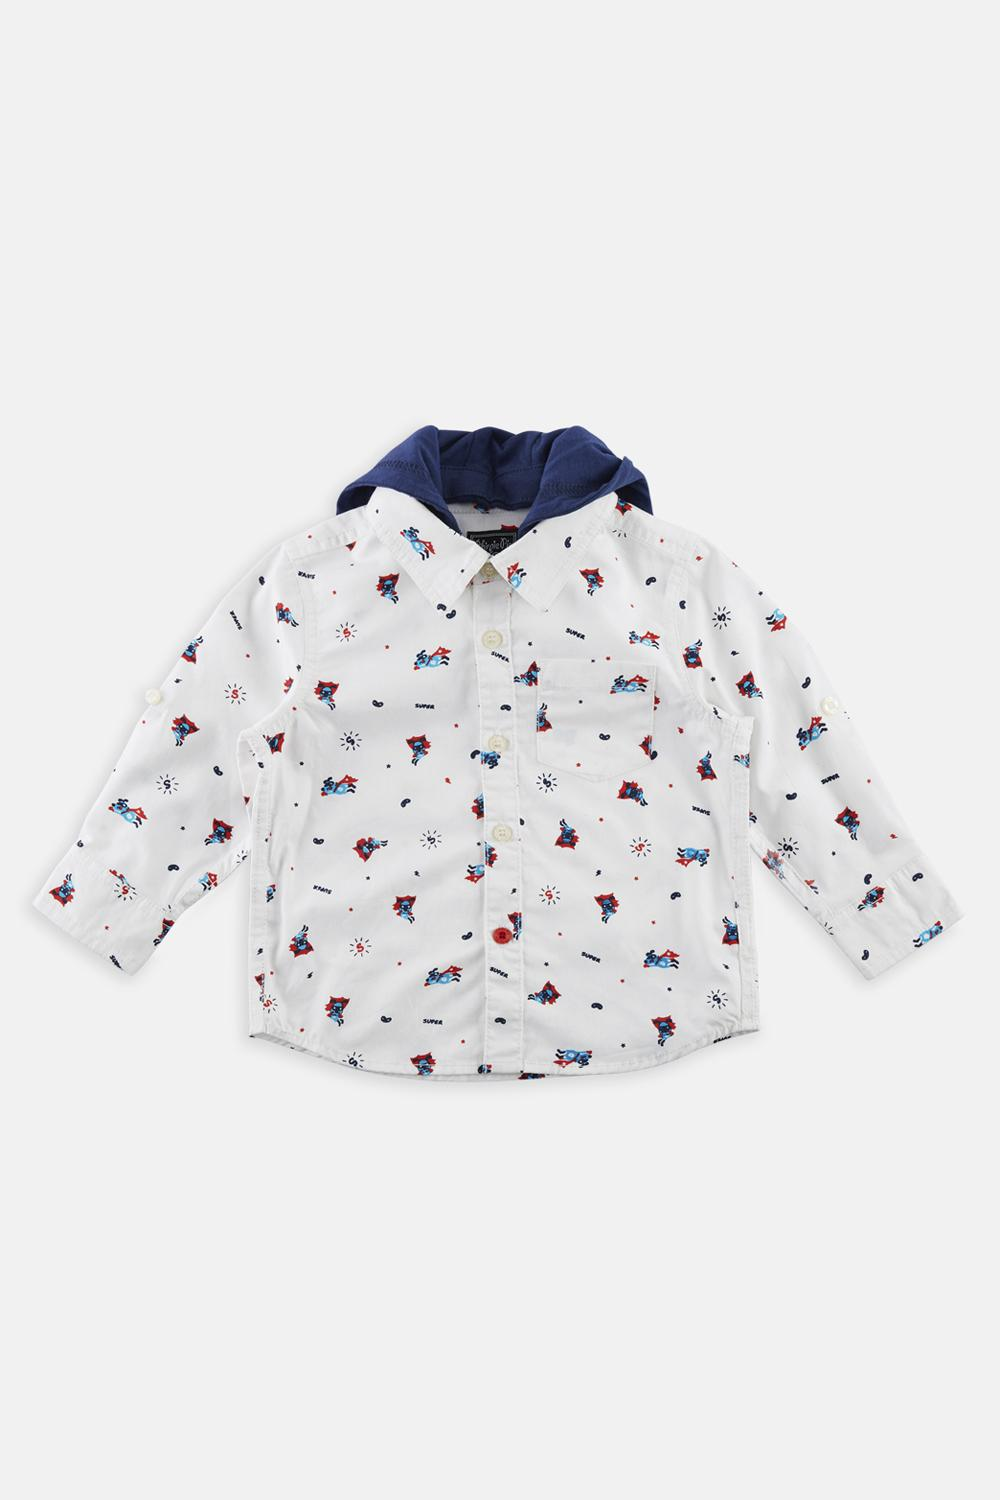 4b5448a03be6 Shop Infant Boys Shirts and Sweaters